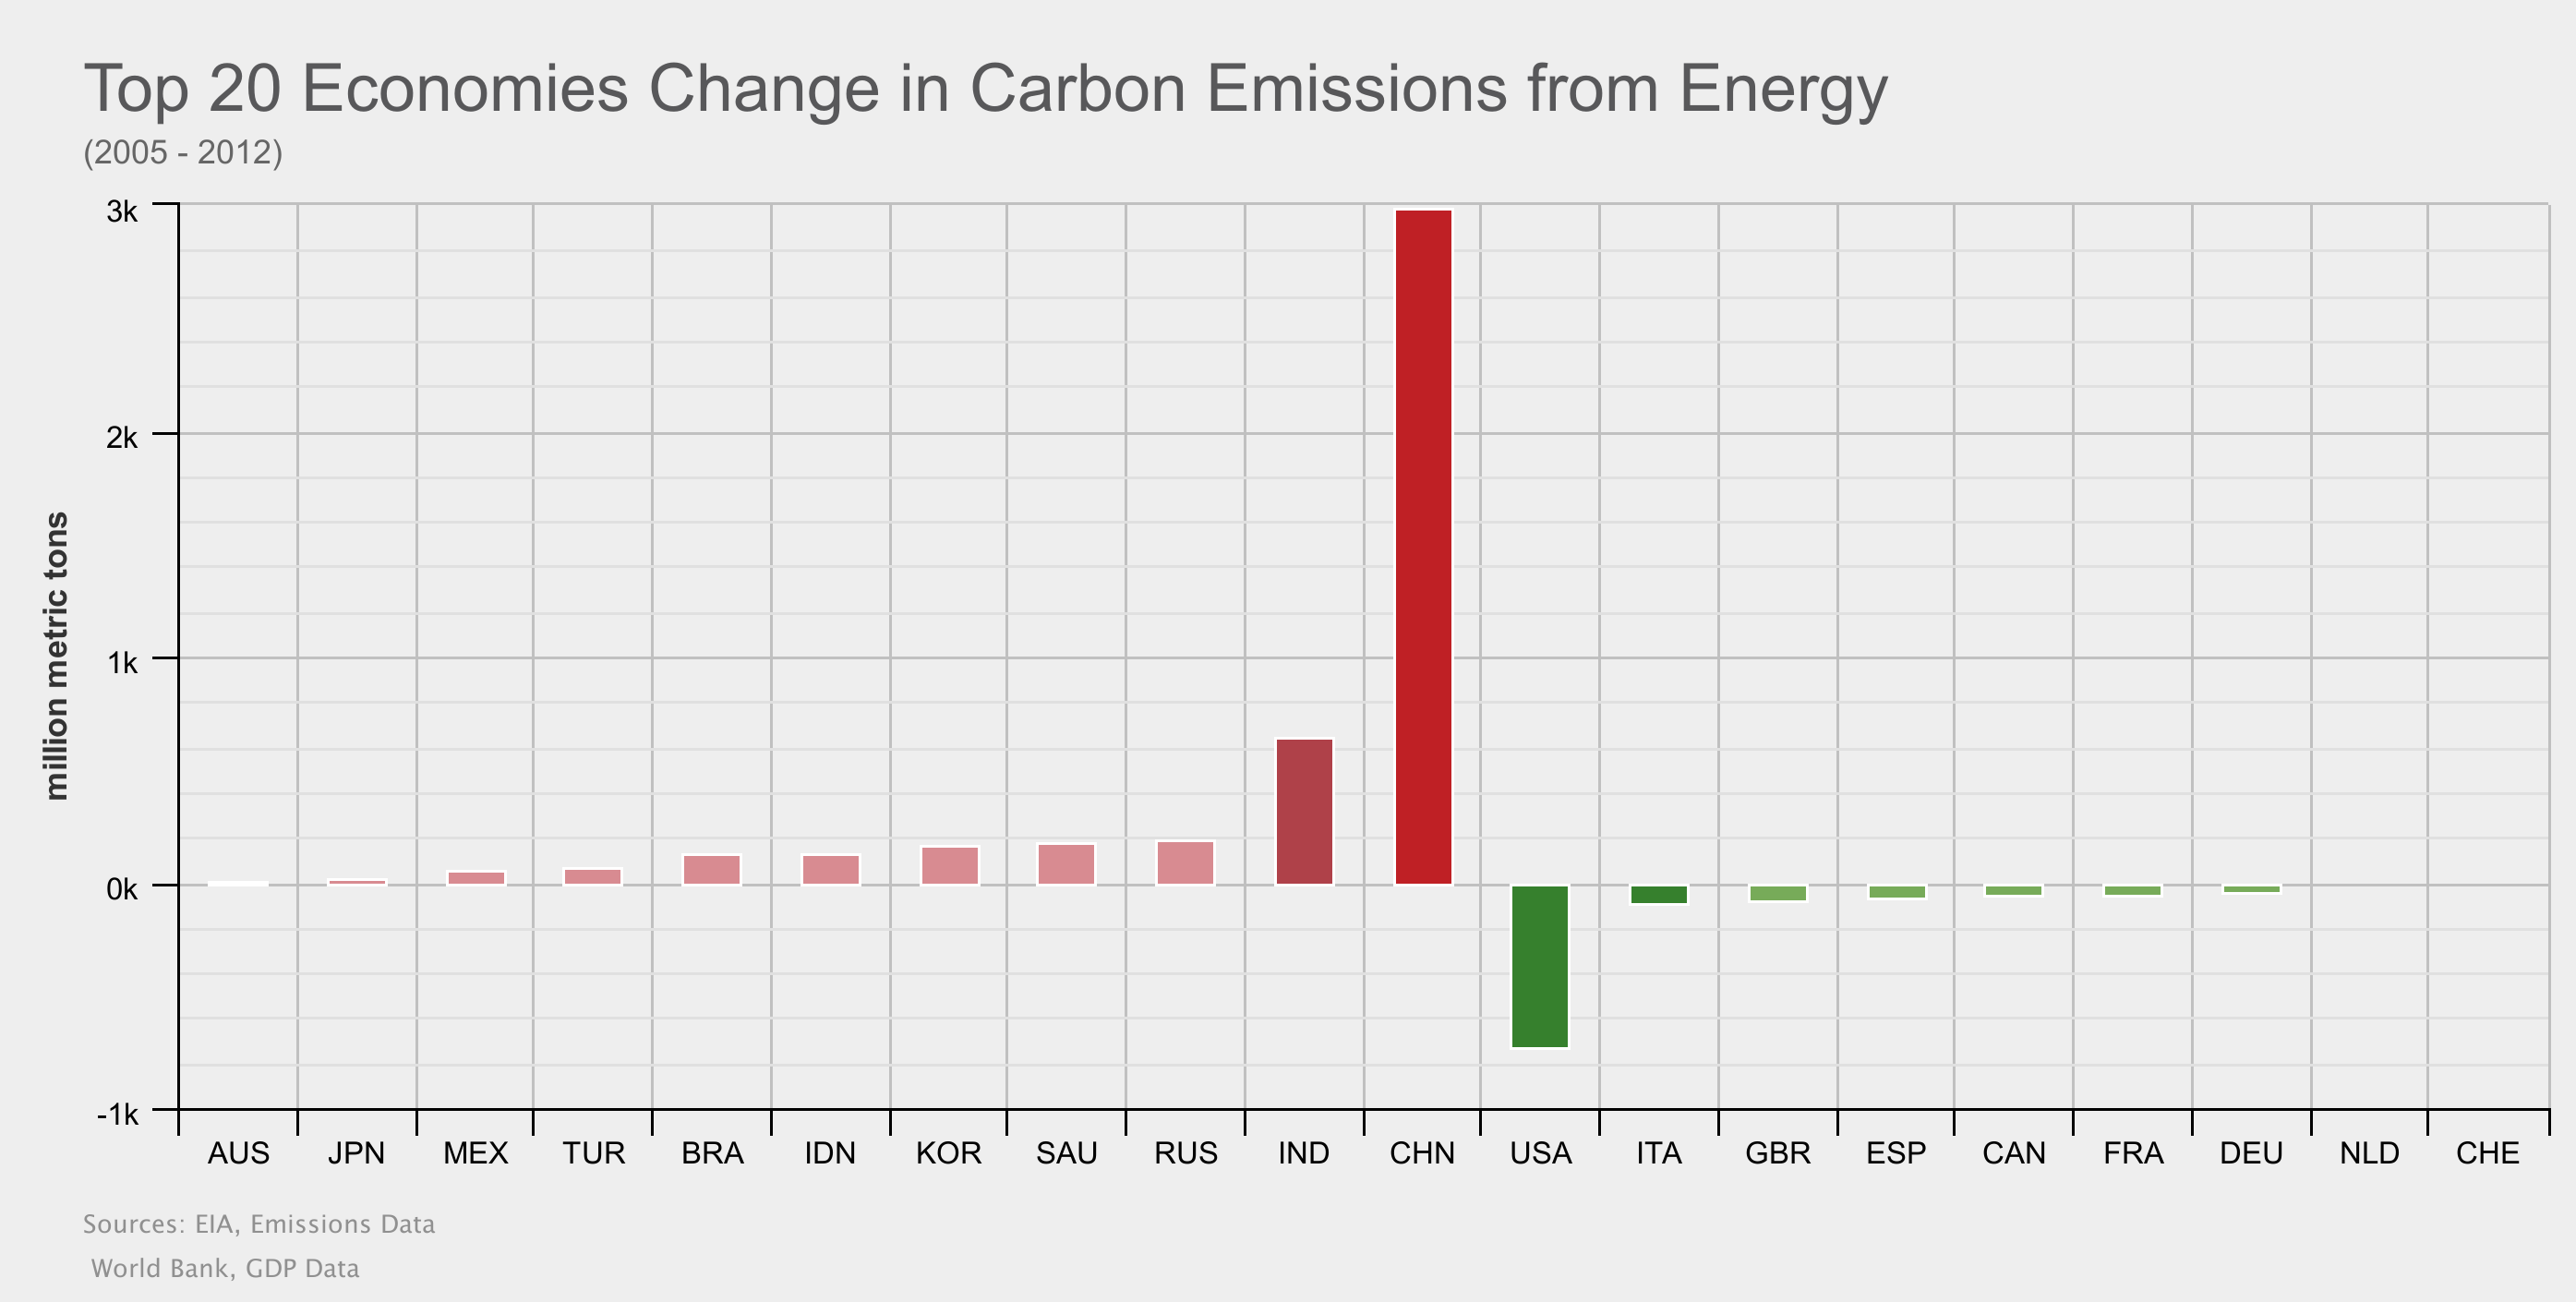 Top 20 Economies Change Carbon Emissions From Energy 2005-2012